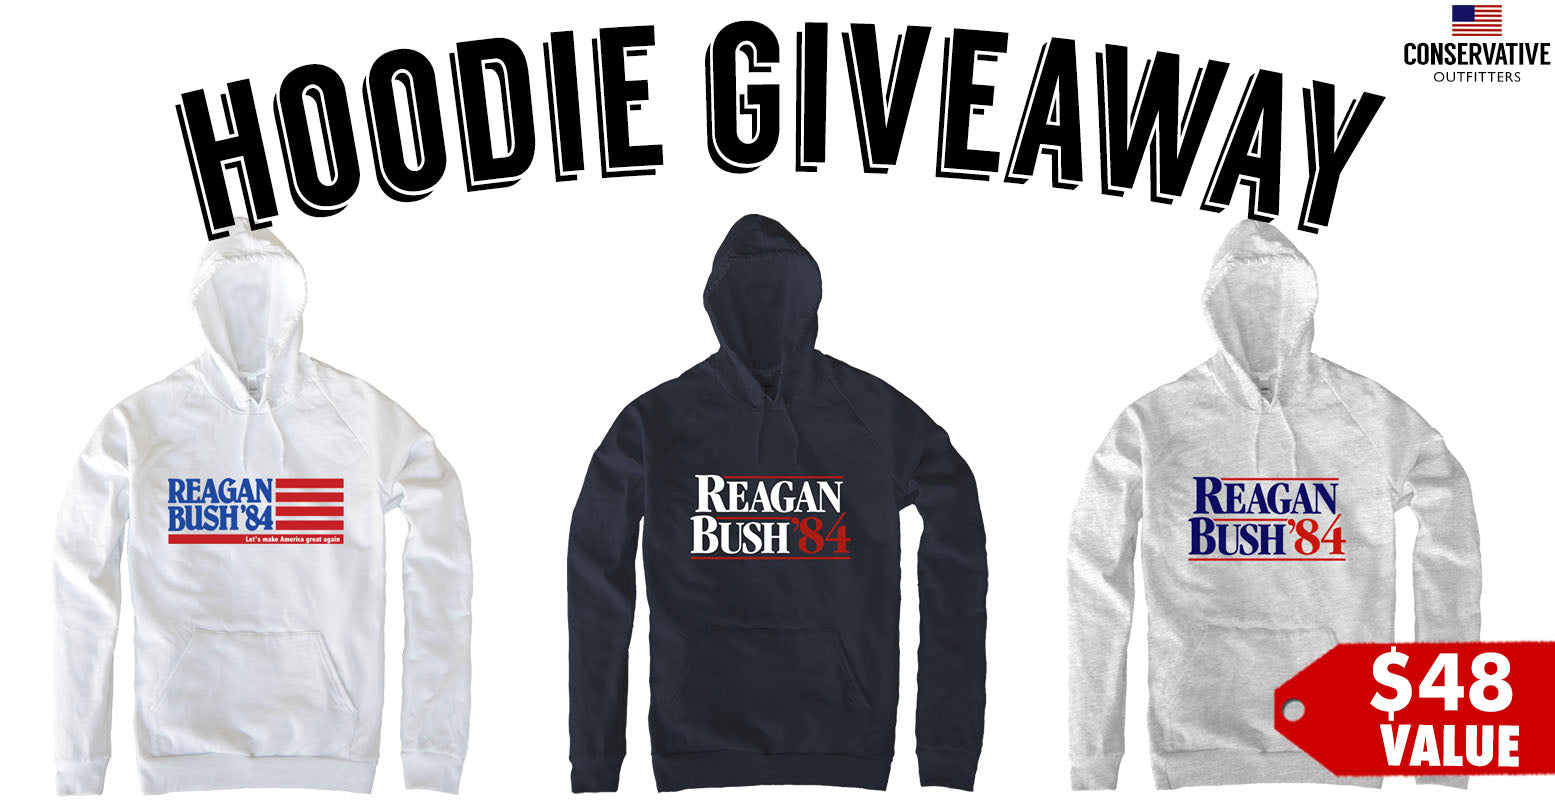 FREE 1984 Ronald Reagan Hoodies